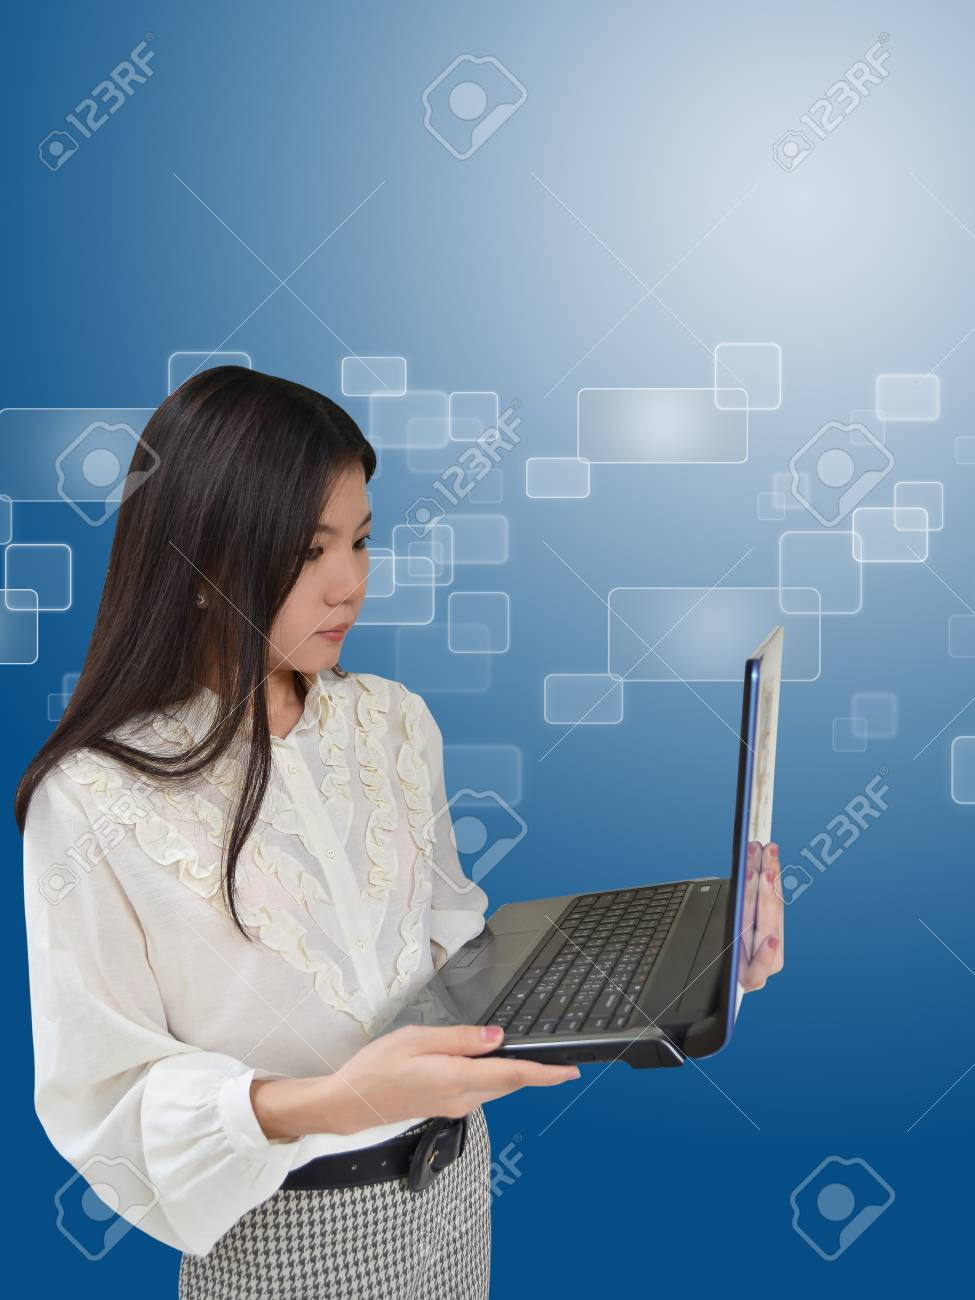 Business woman with laptop computer on blue background Stock Photo - 10444484